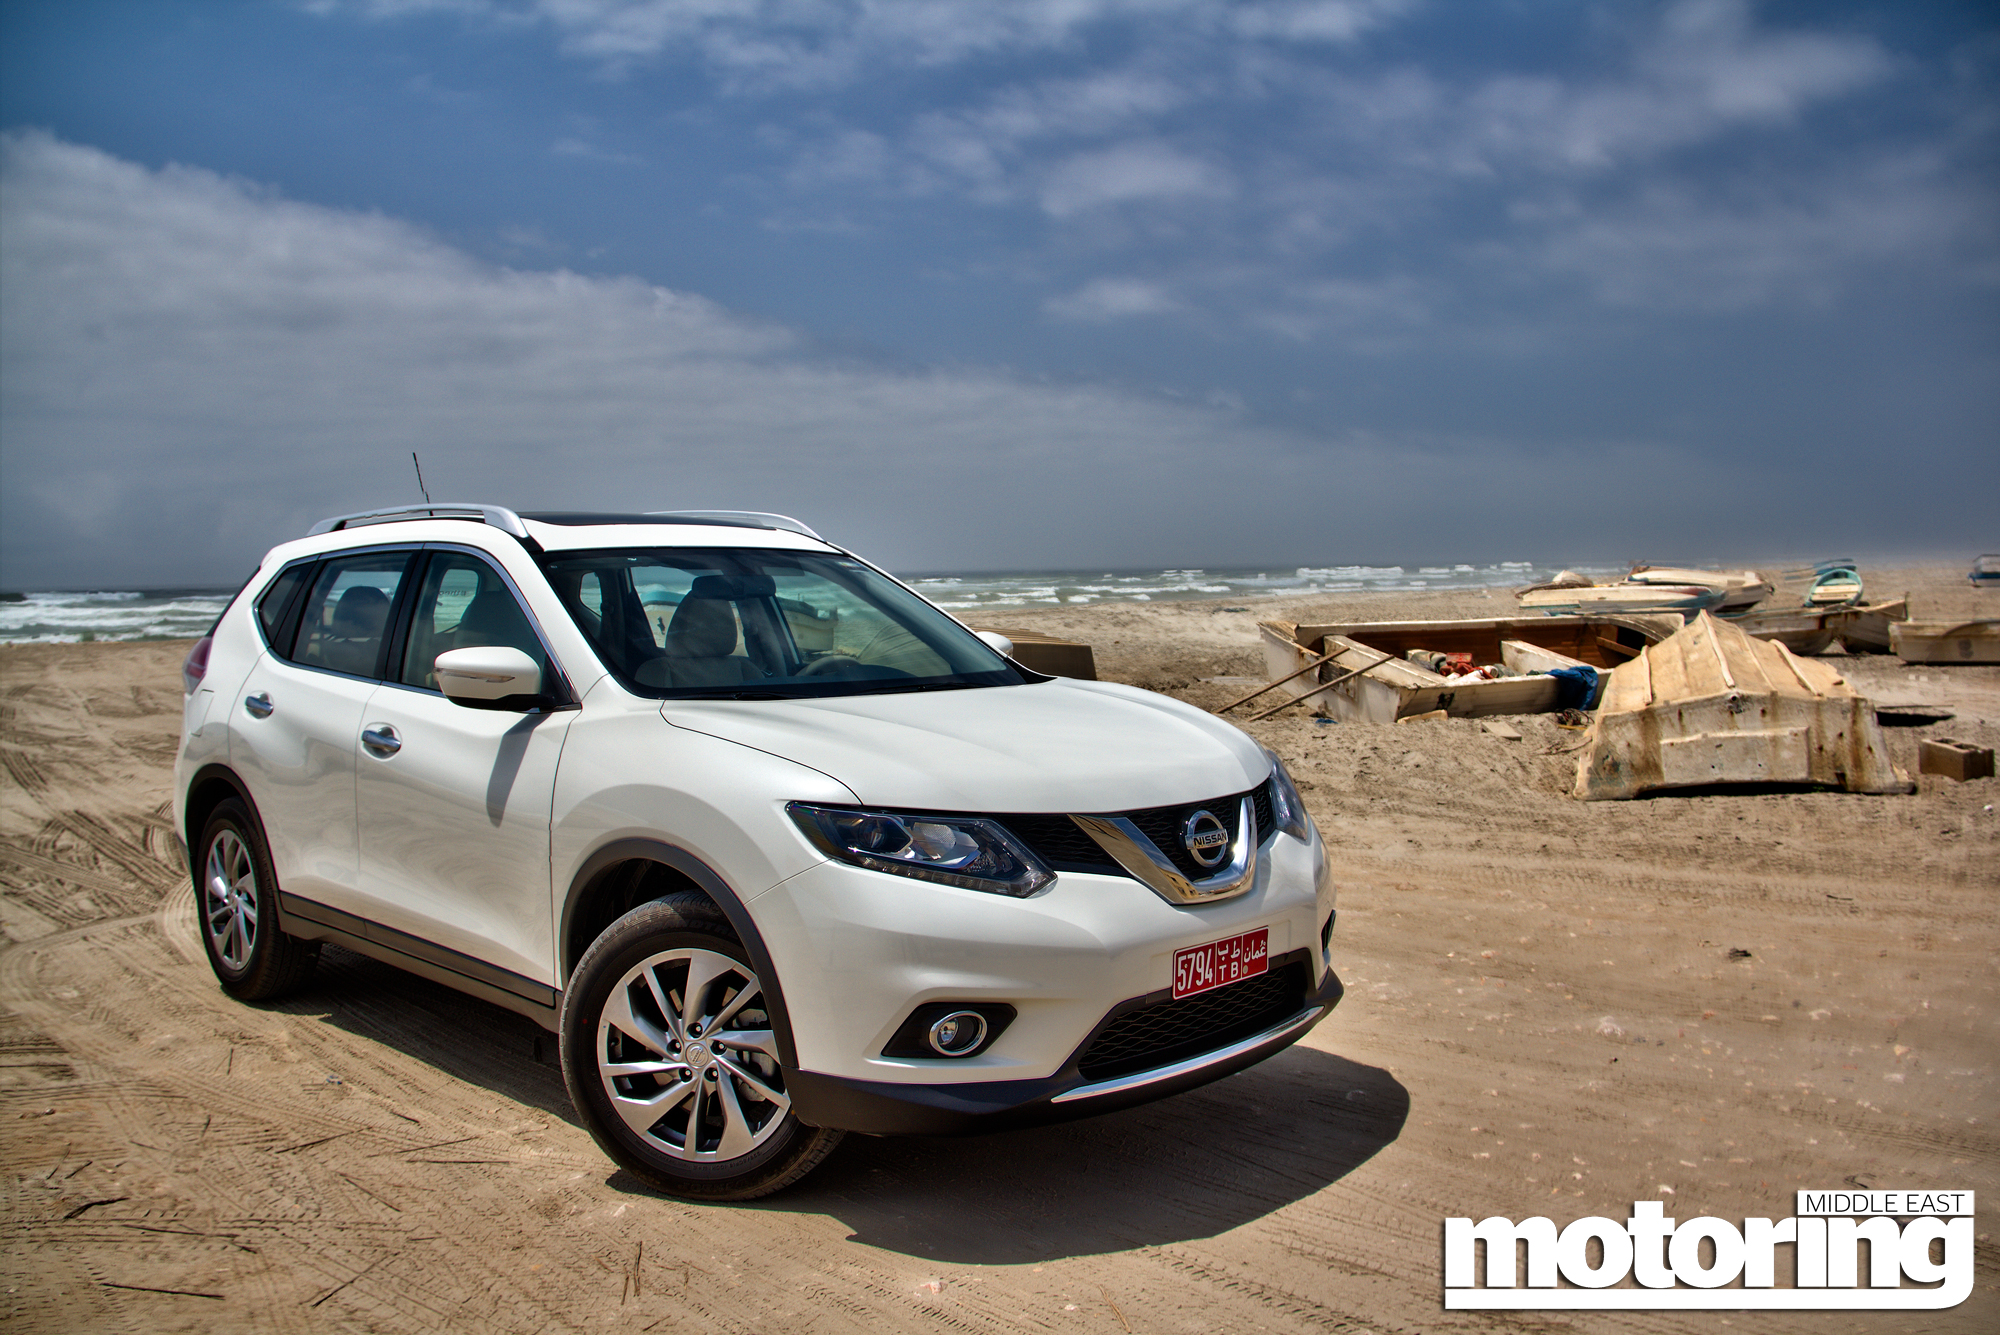 Used Honda Crv >> 2015 Nissan X-Trail ReviewMotoring Middle East: Car news, Reviews and Buying guides